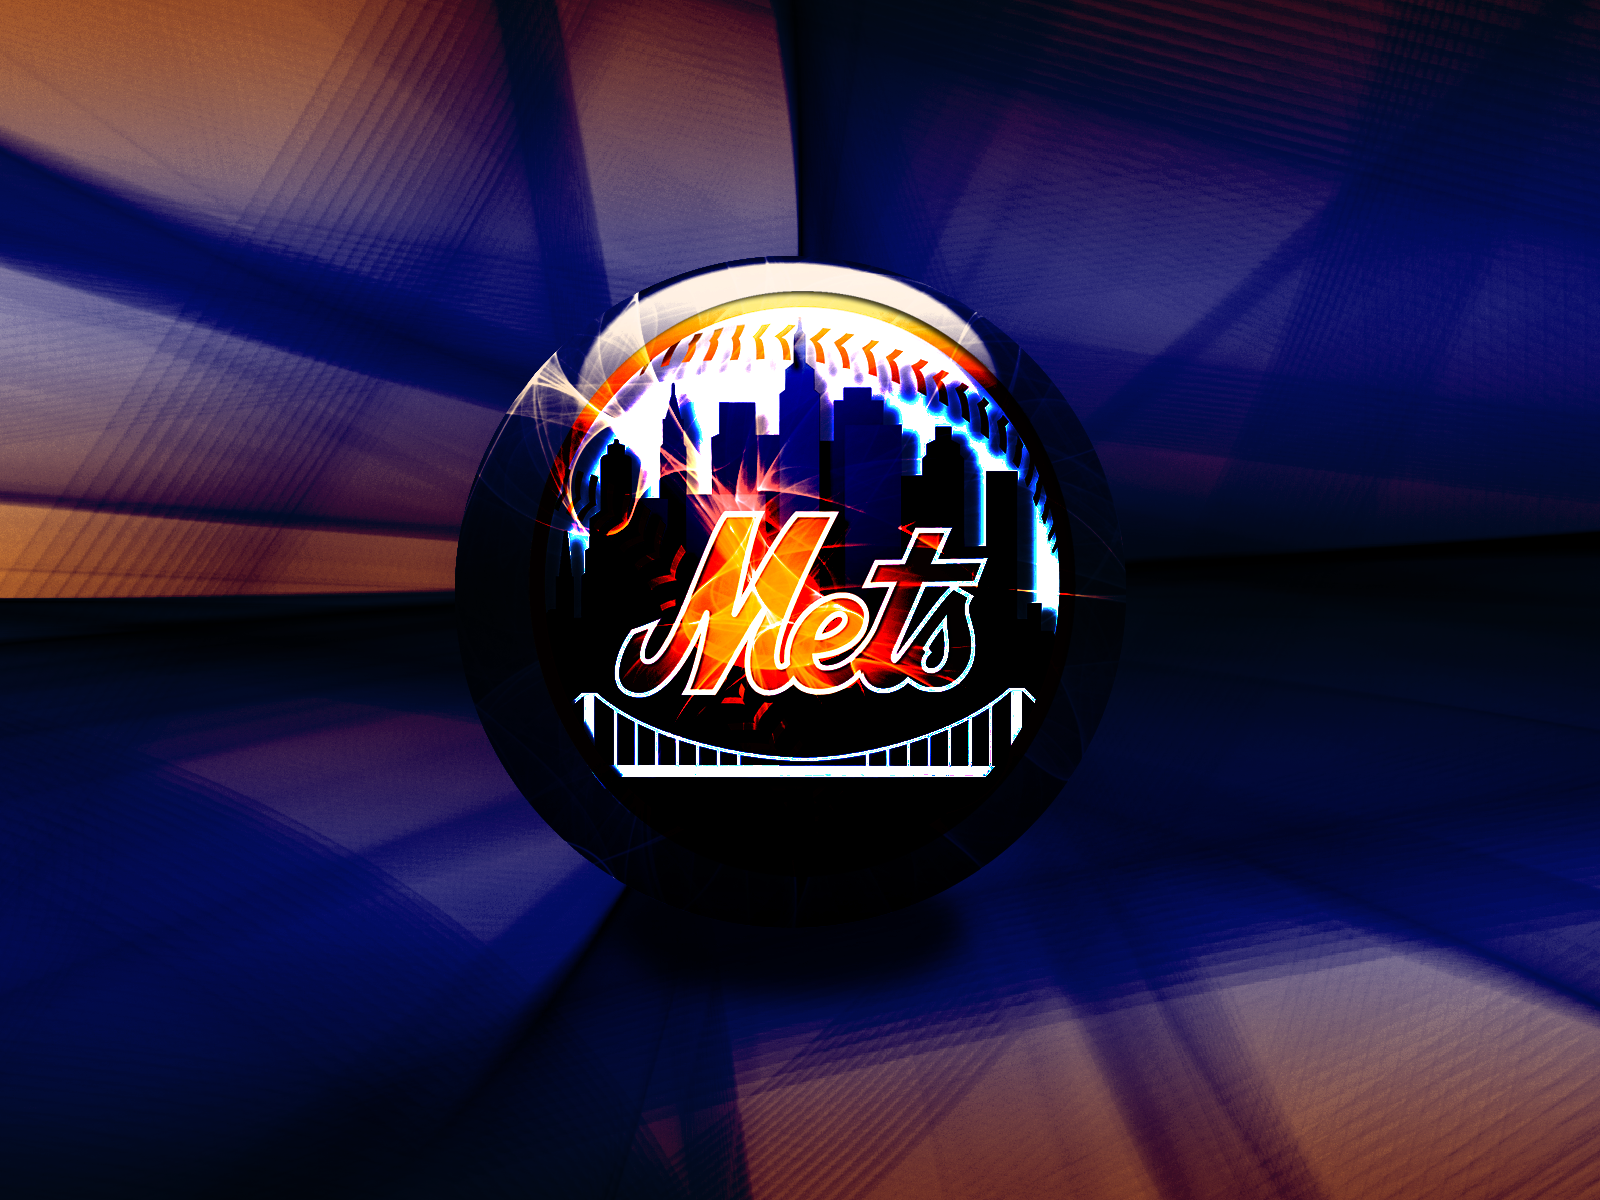 NEW YORK METS baseball mlb (2) wallpaper | 1600x1200 | 232311 | WallpaperUP